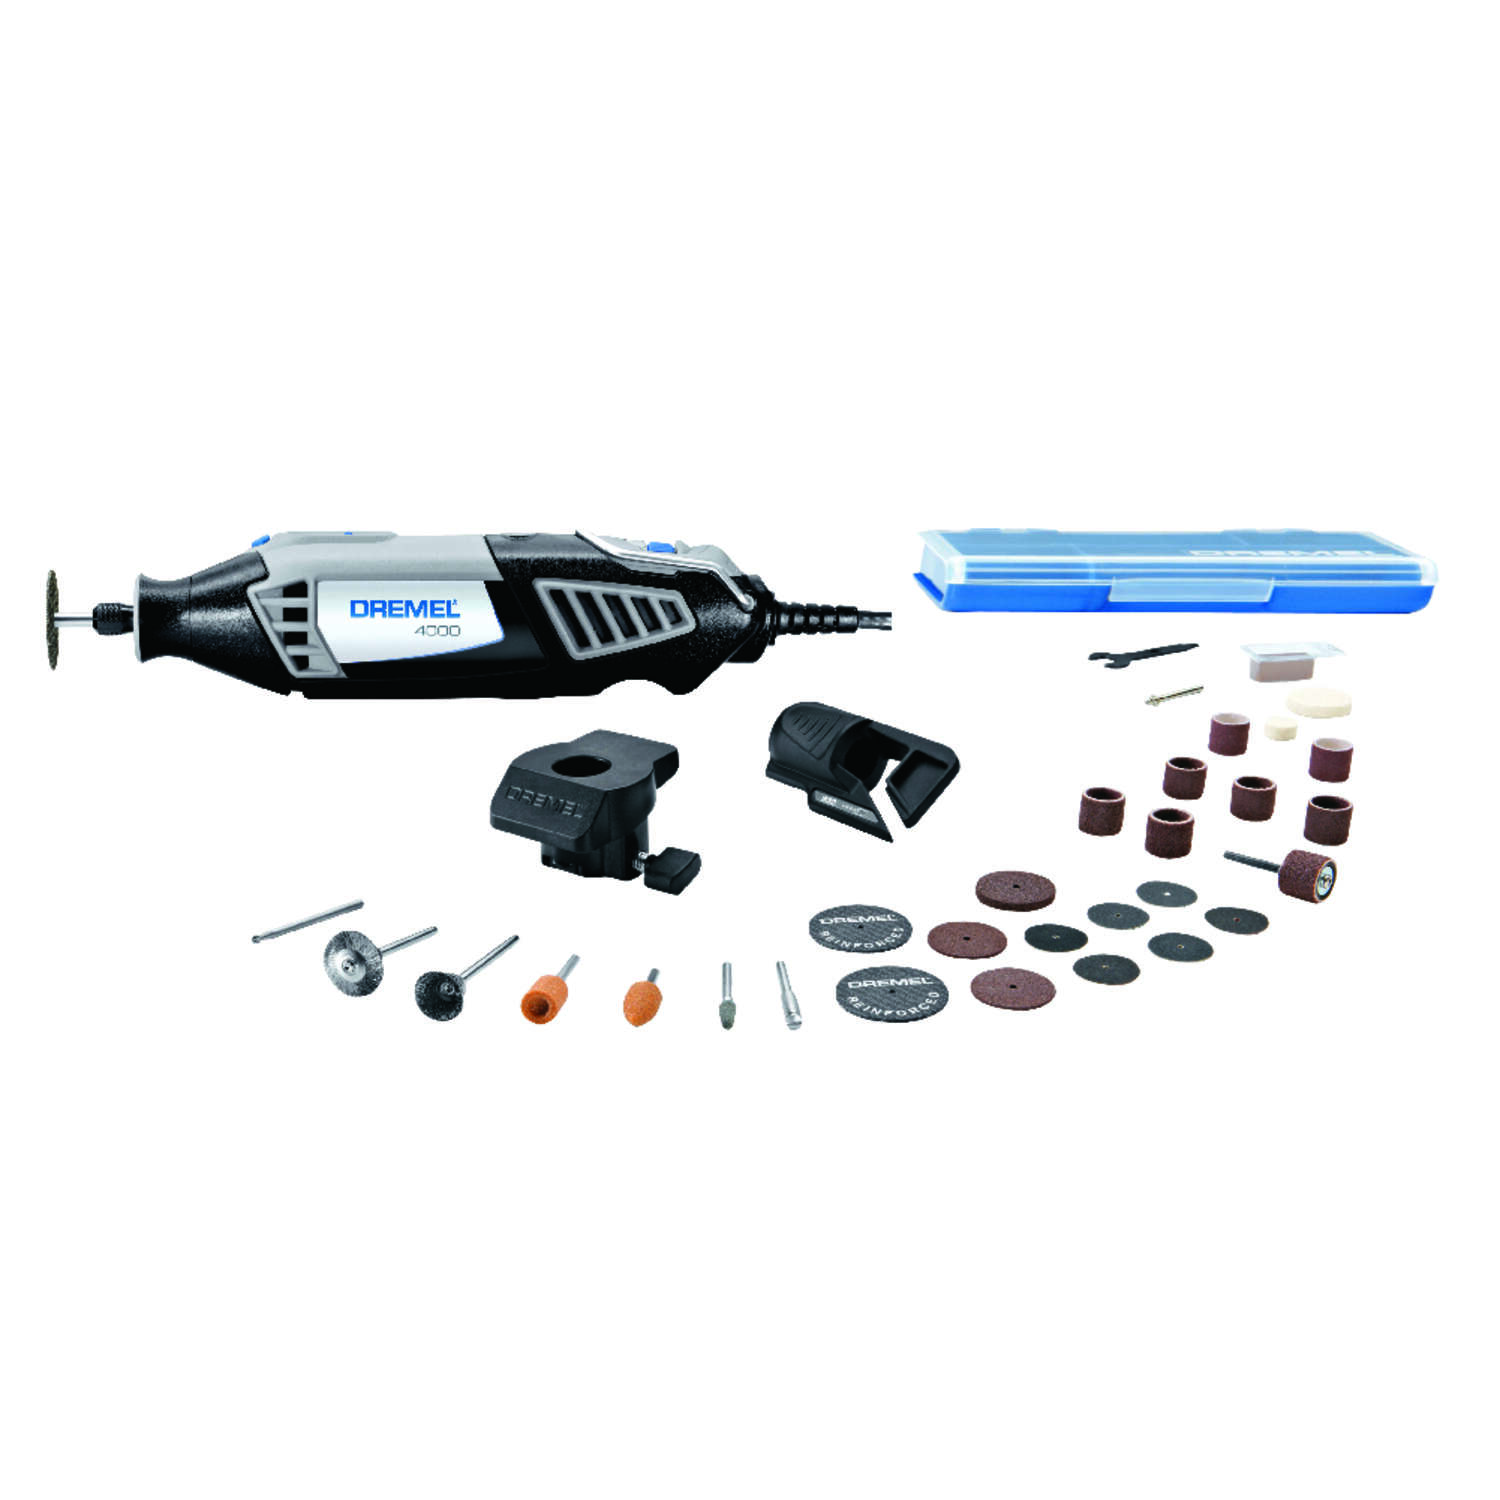 Dremel  4000  1/8 in. Corded  Rotary Tool  Kit  1.6 amps 120 volt 35000 rpm